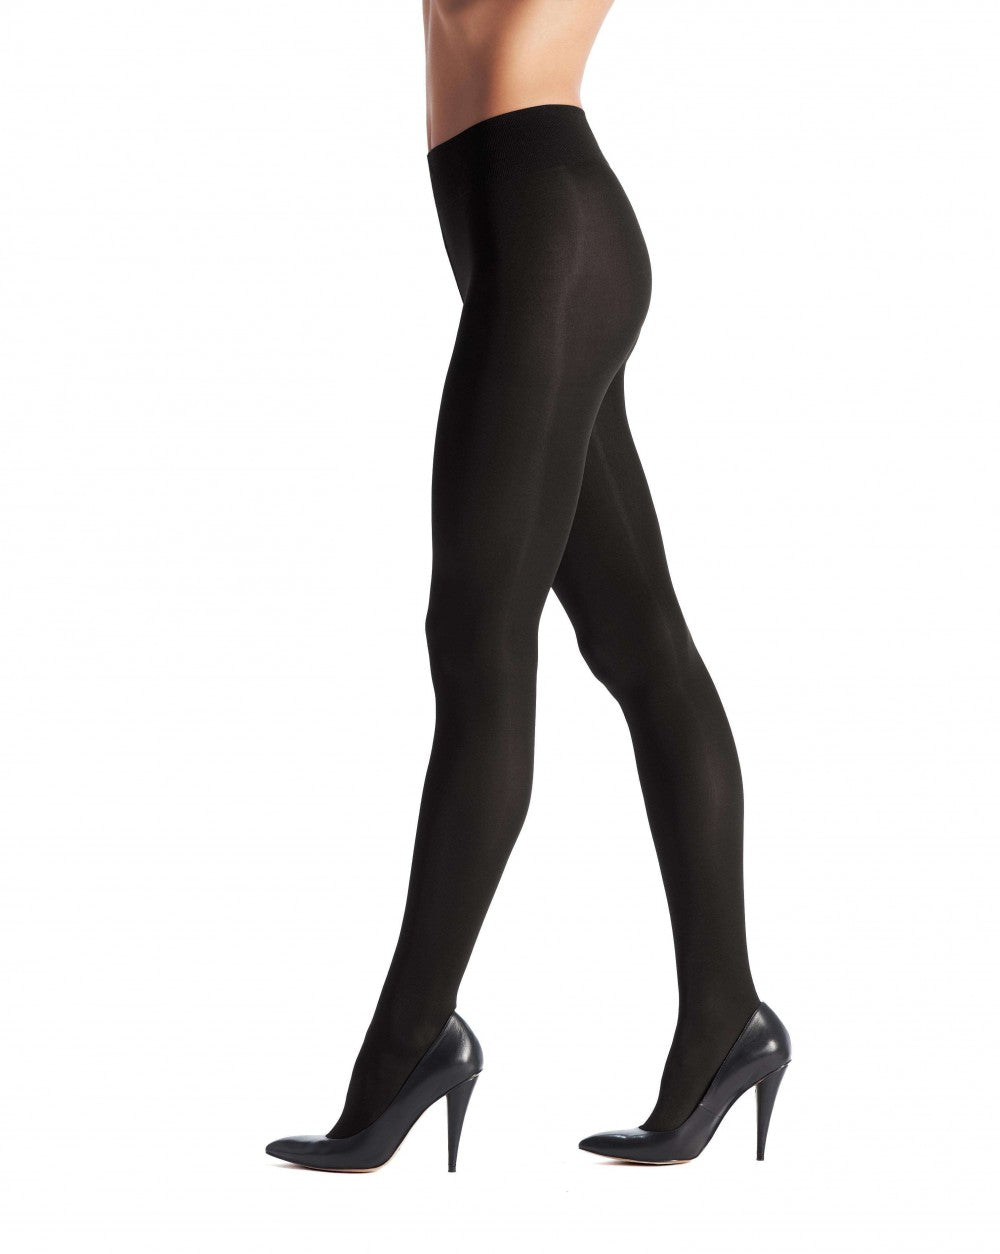 OROBLU Tights Satin 60 Opaque, BLACK